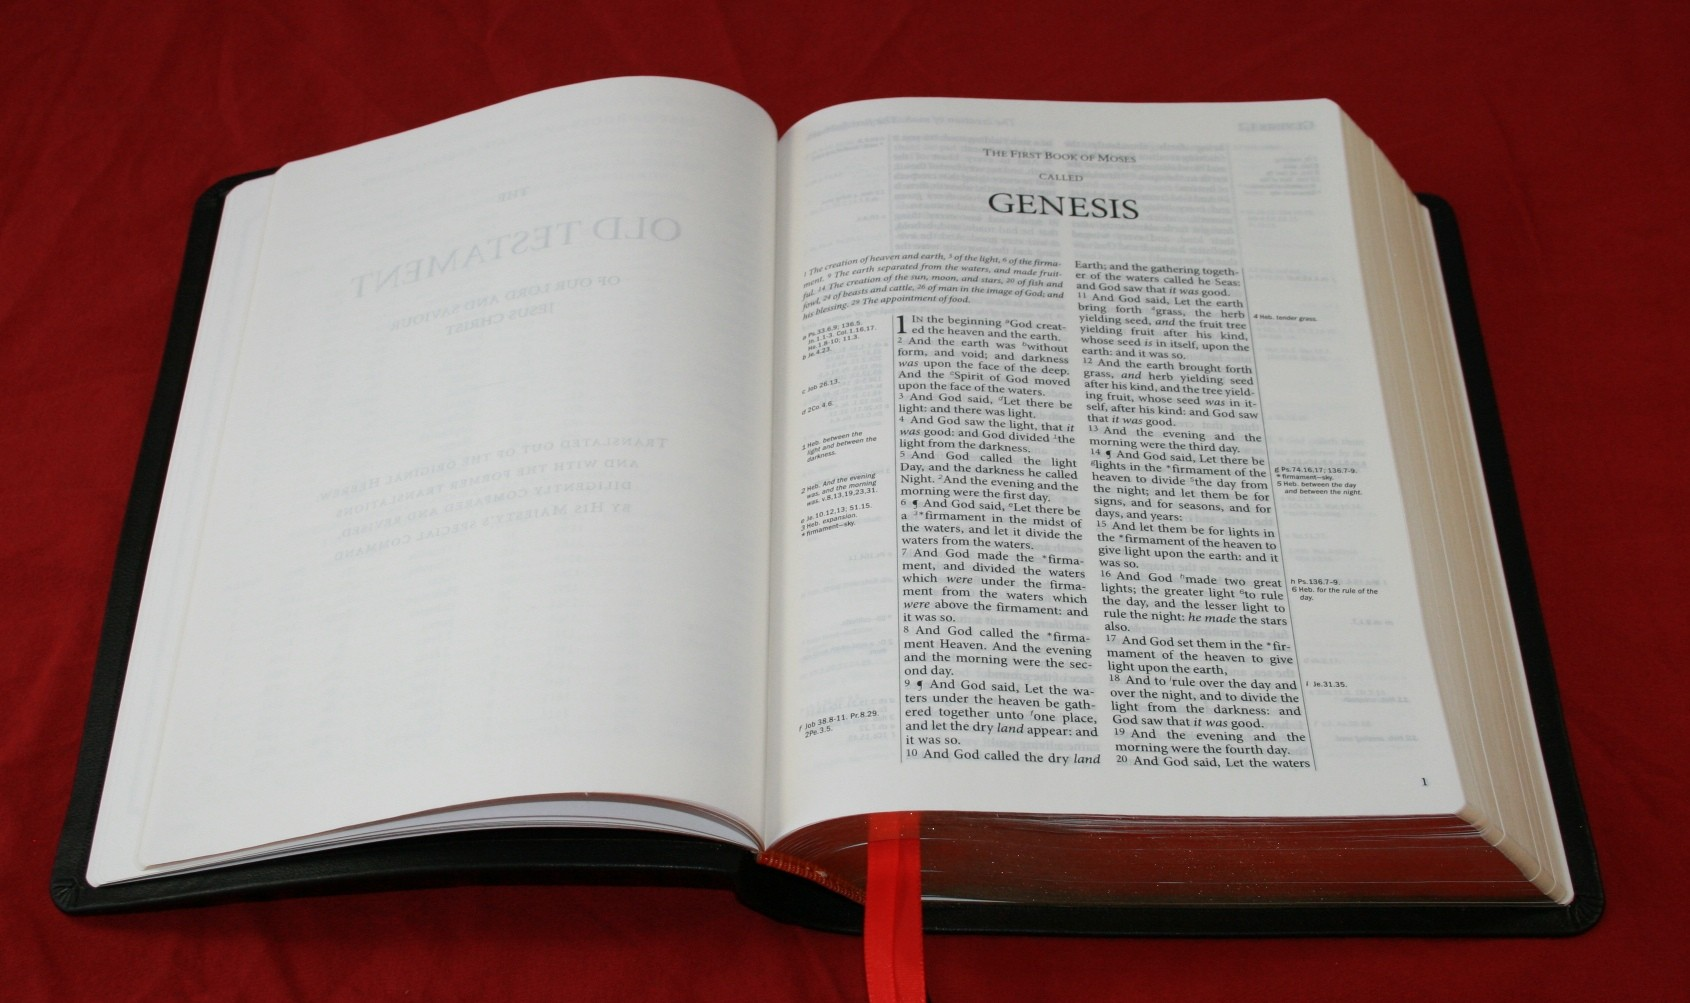 TBS Westminster Reference Bible KJV 004